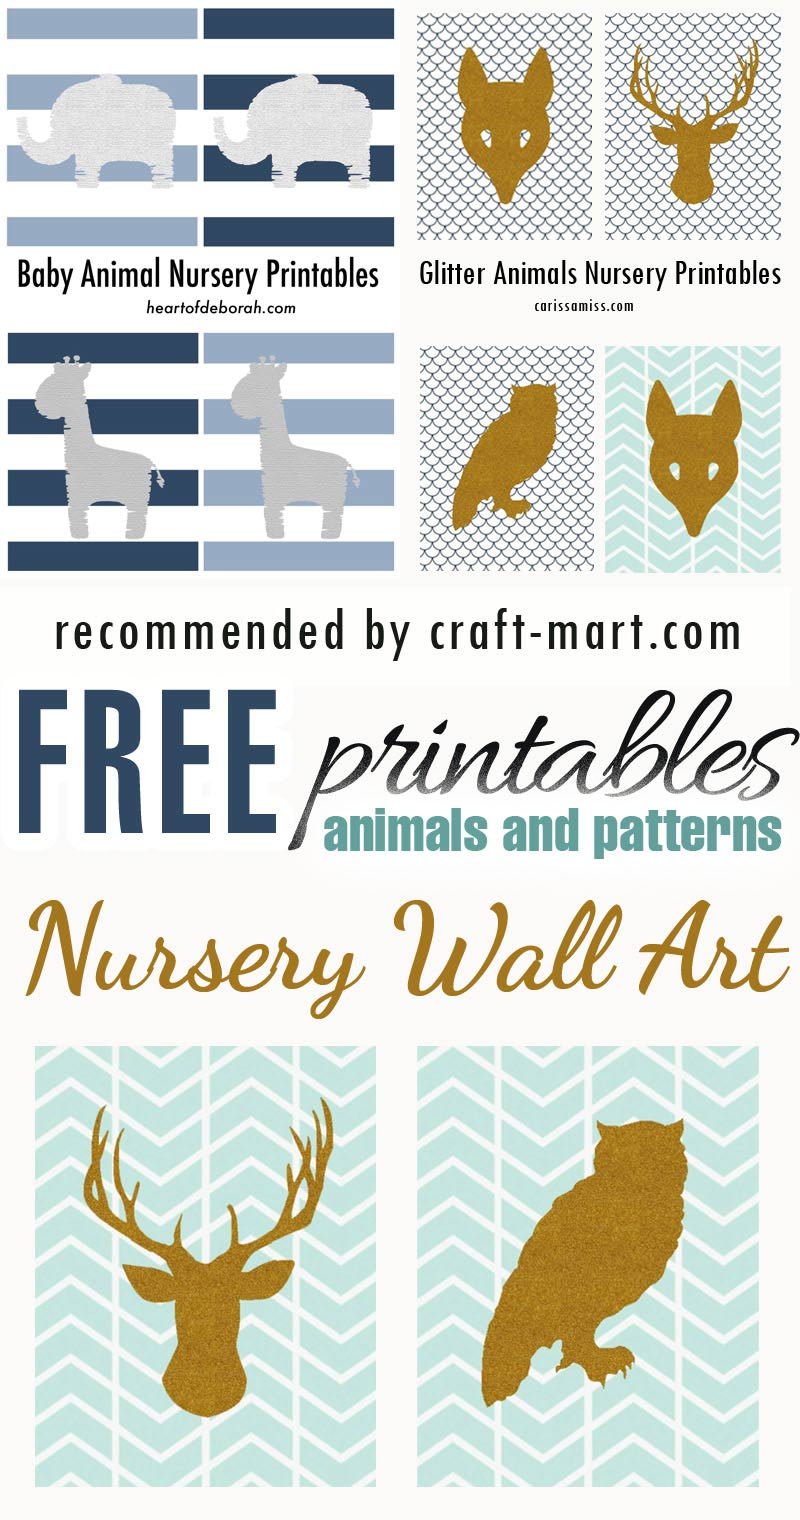 Patterns and Animals Modern Nursery FREE printables #freeprintables #freenurseryprints #freenurserywallart #cutenurseryprints #cuteanimalsfreeprintables #animalsfreenurseryprintables